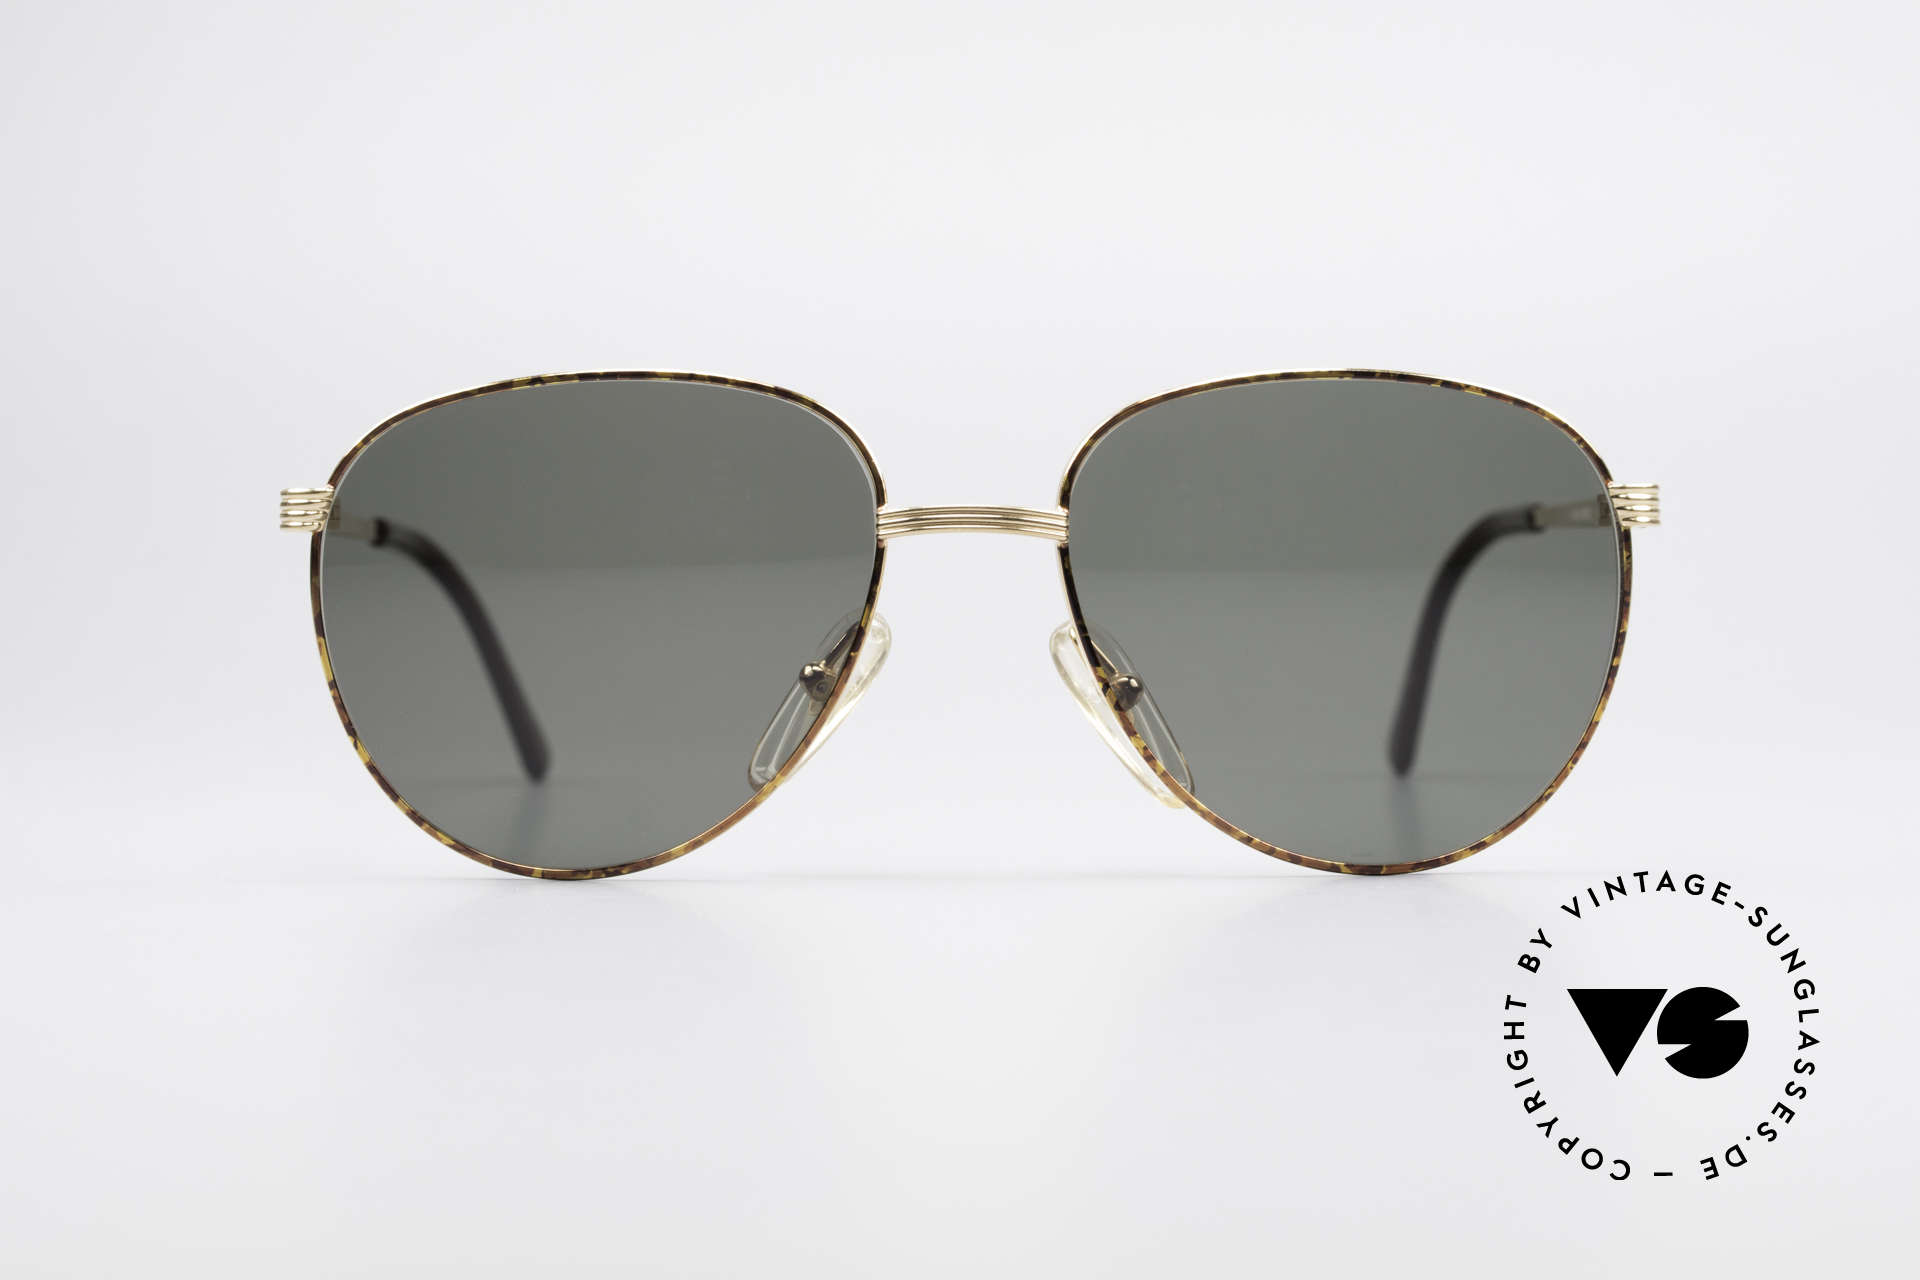 Christian Dior 2754 Round Panto Vintage Shades, timeless fashionable design; fits just all occasions, Made for Men and Women